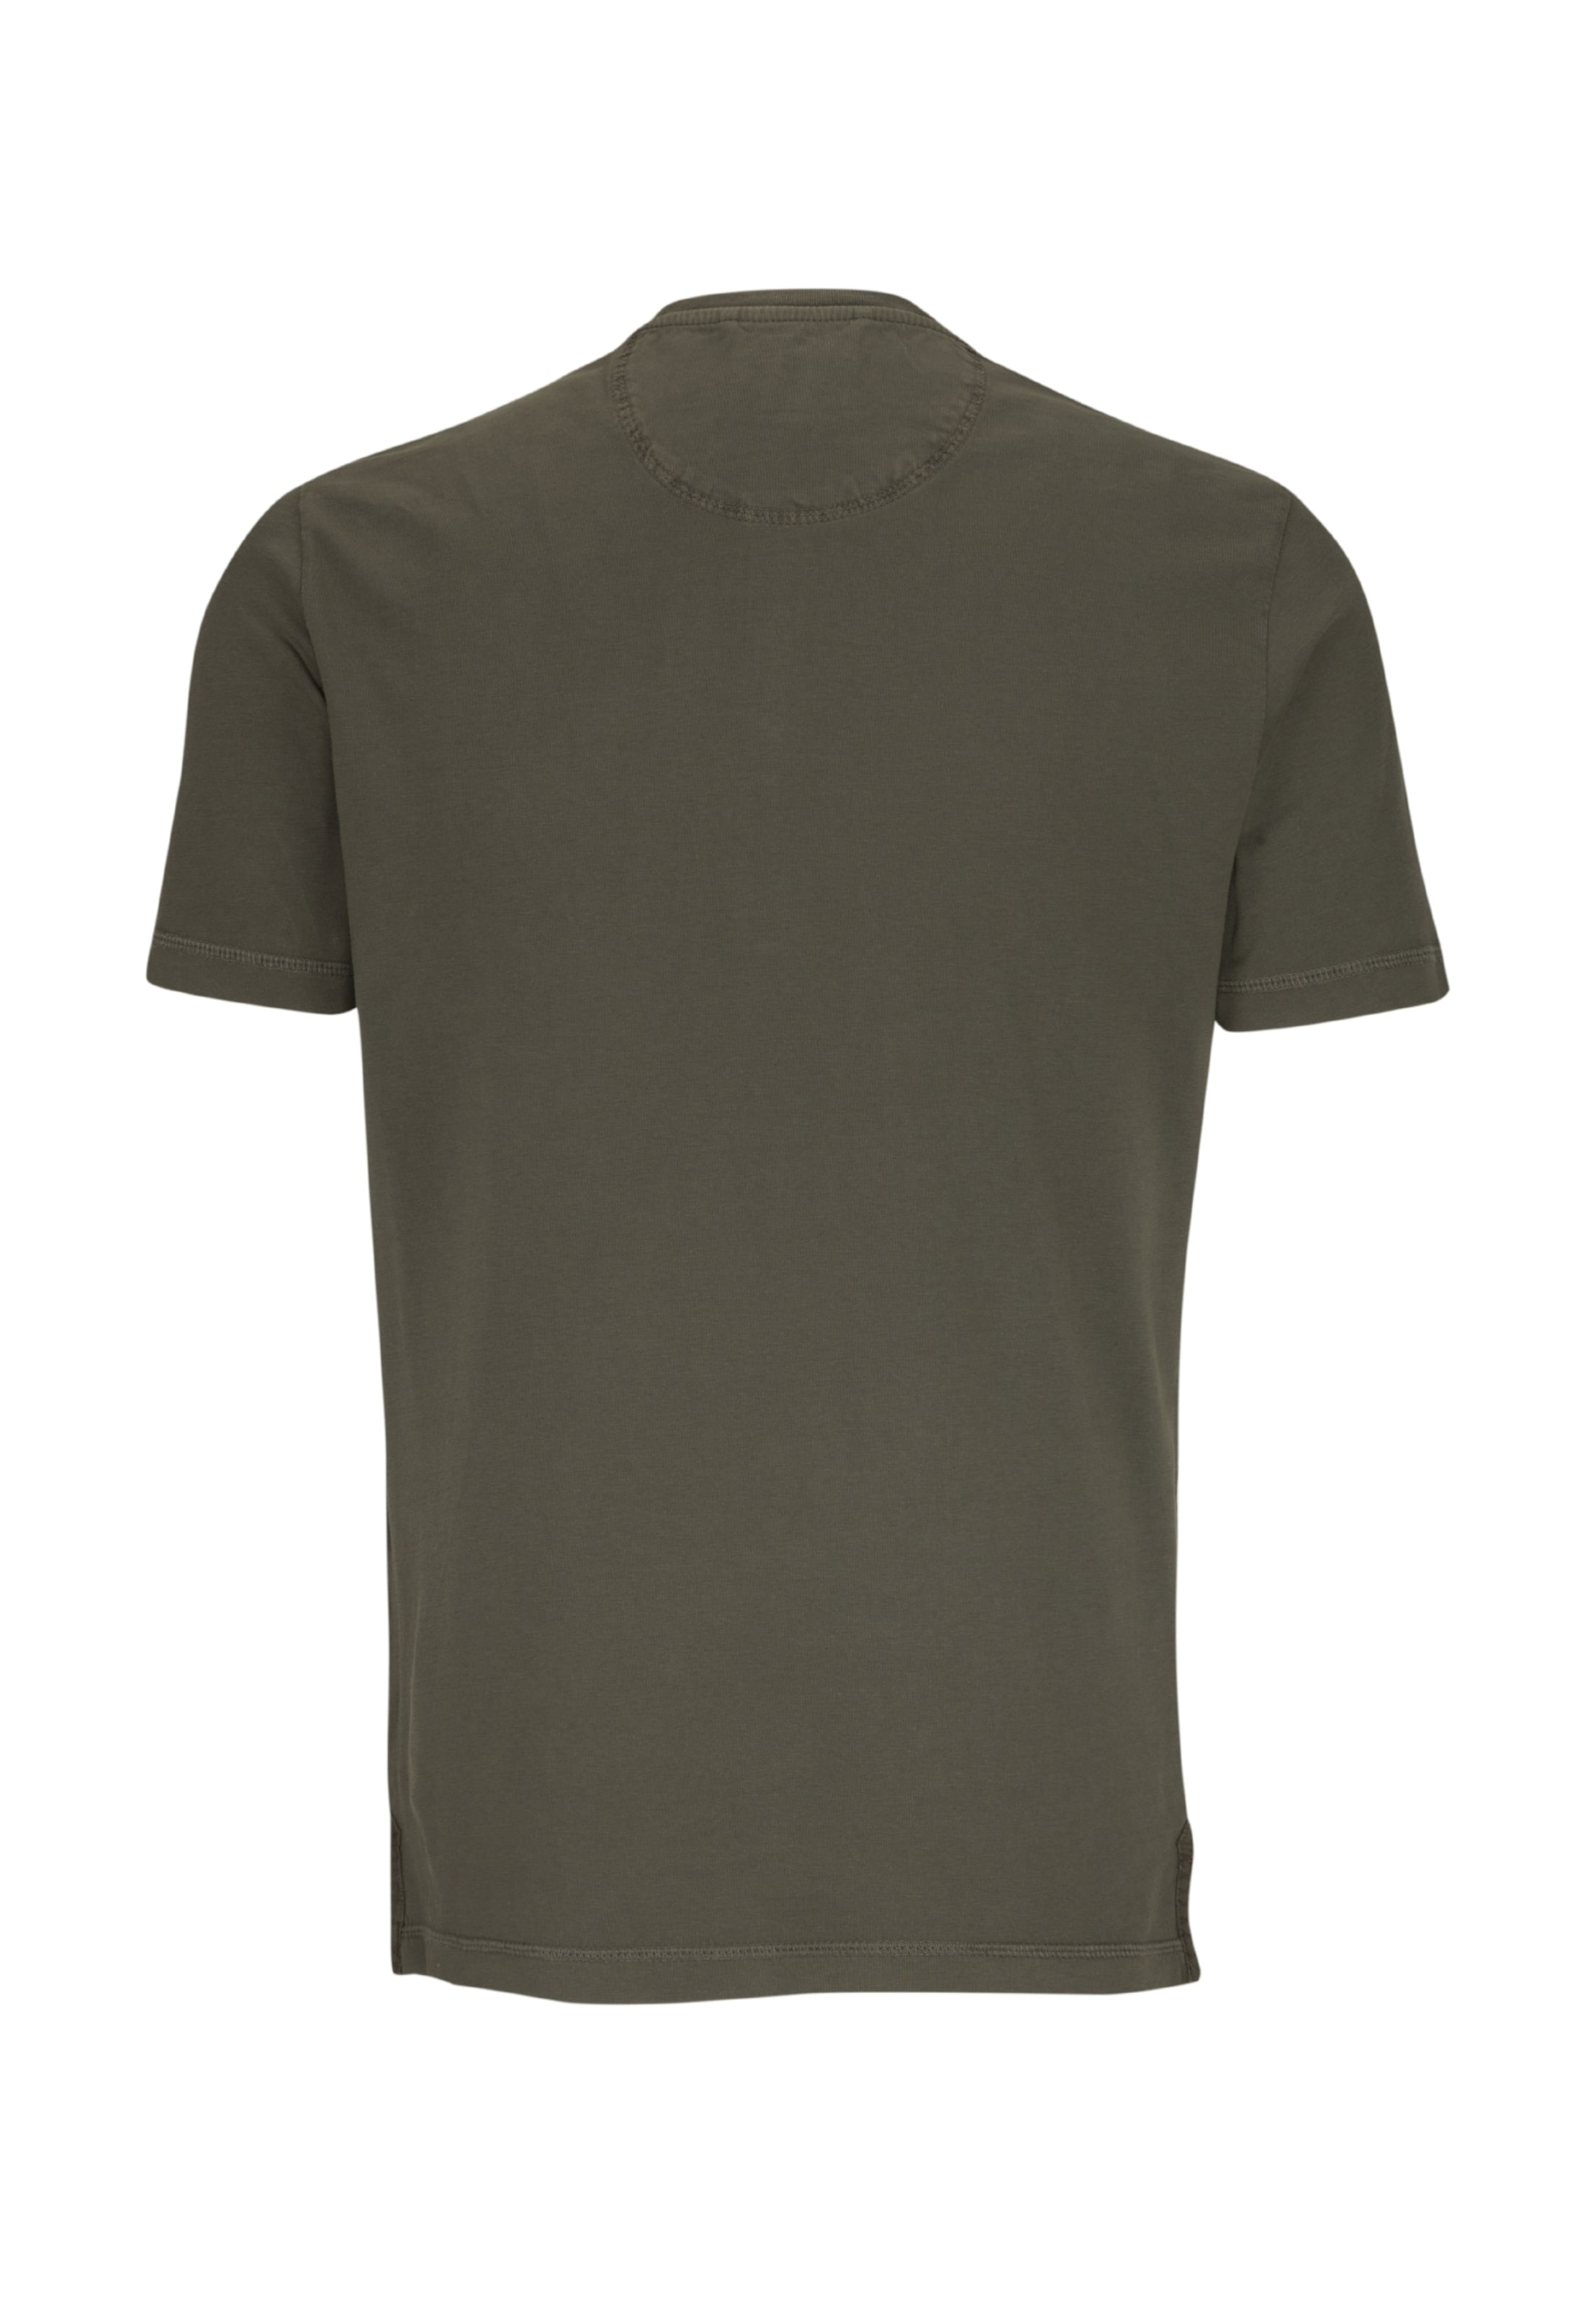 Camel T Active shirt Oliv In mN0w8n